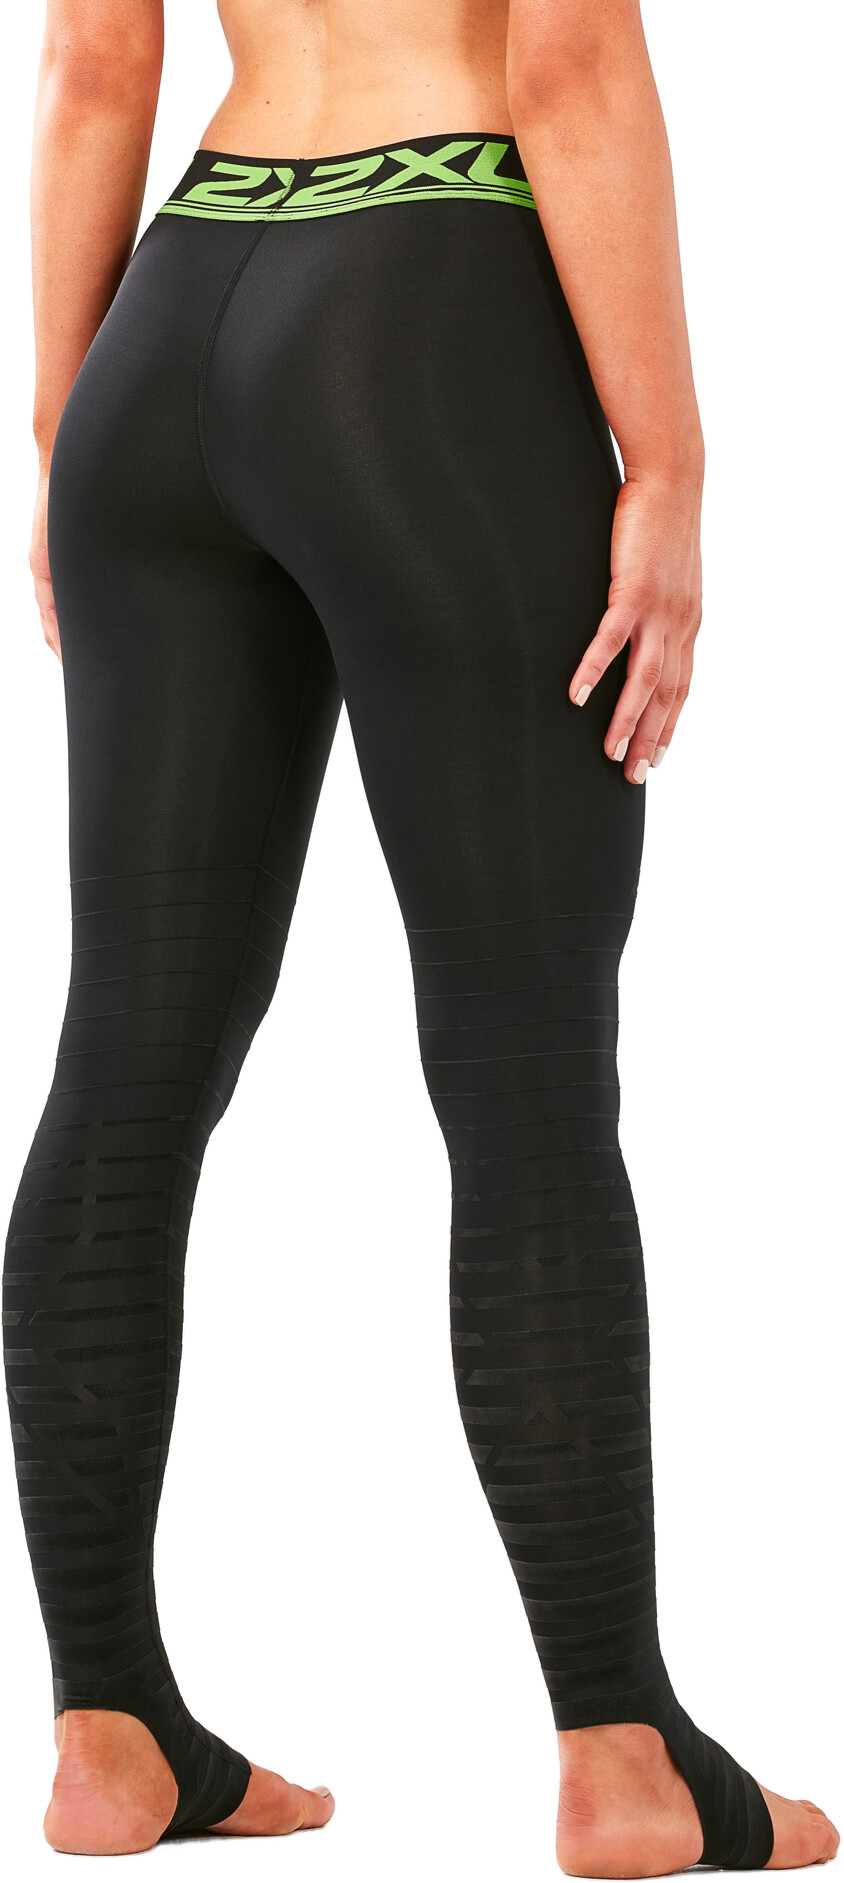 c91c3be392ddd3 ▷ 2XU Power Recovery Compression Tights Women black/nero online bei ...